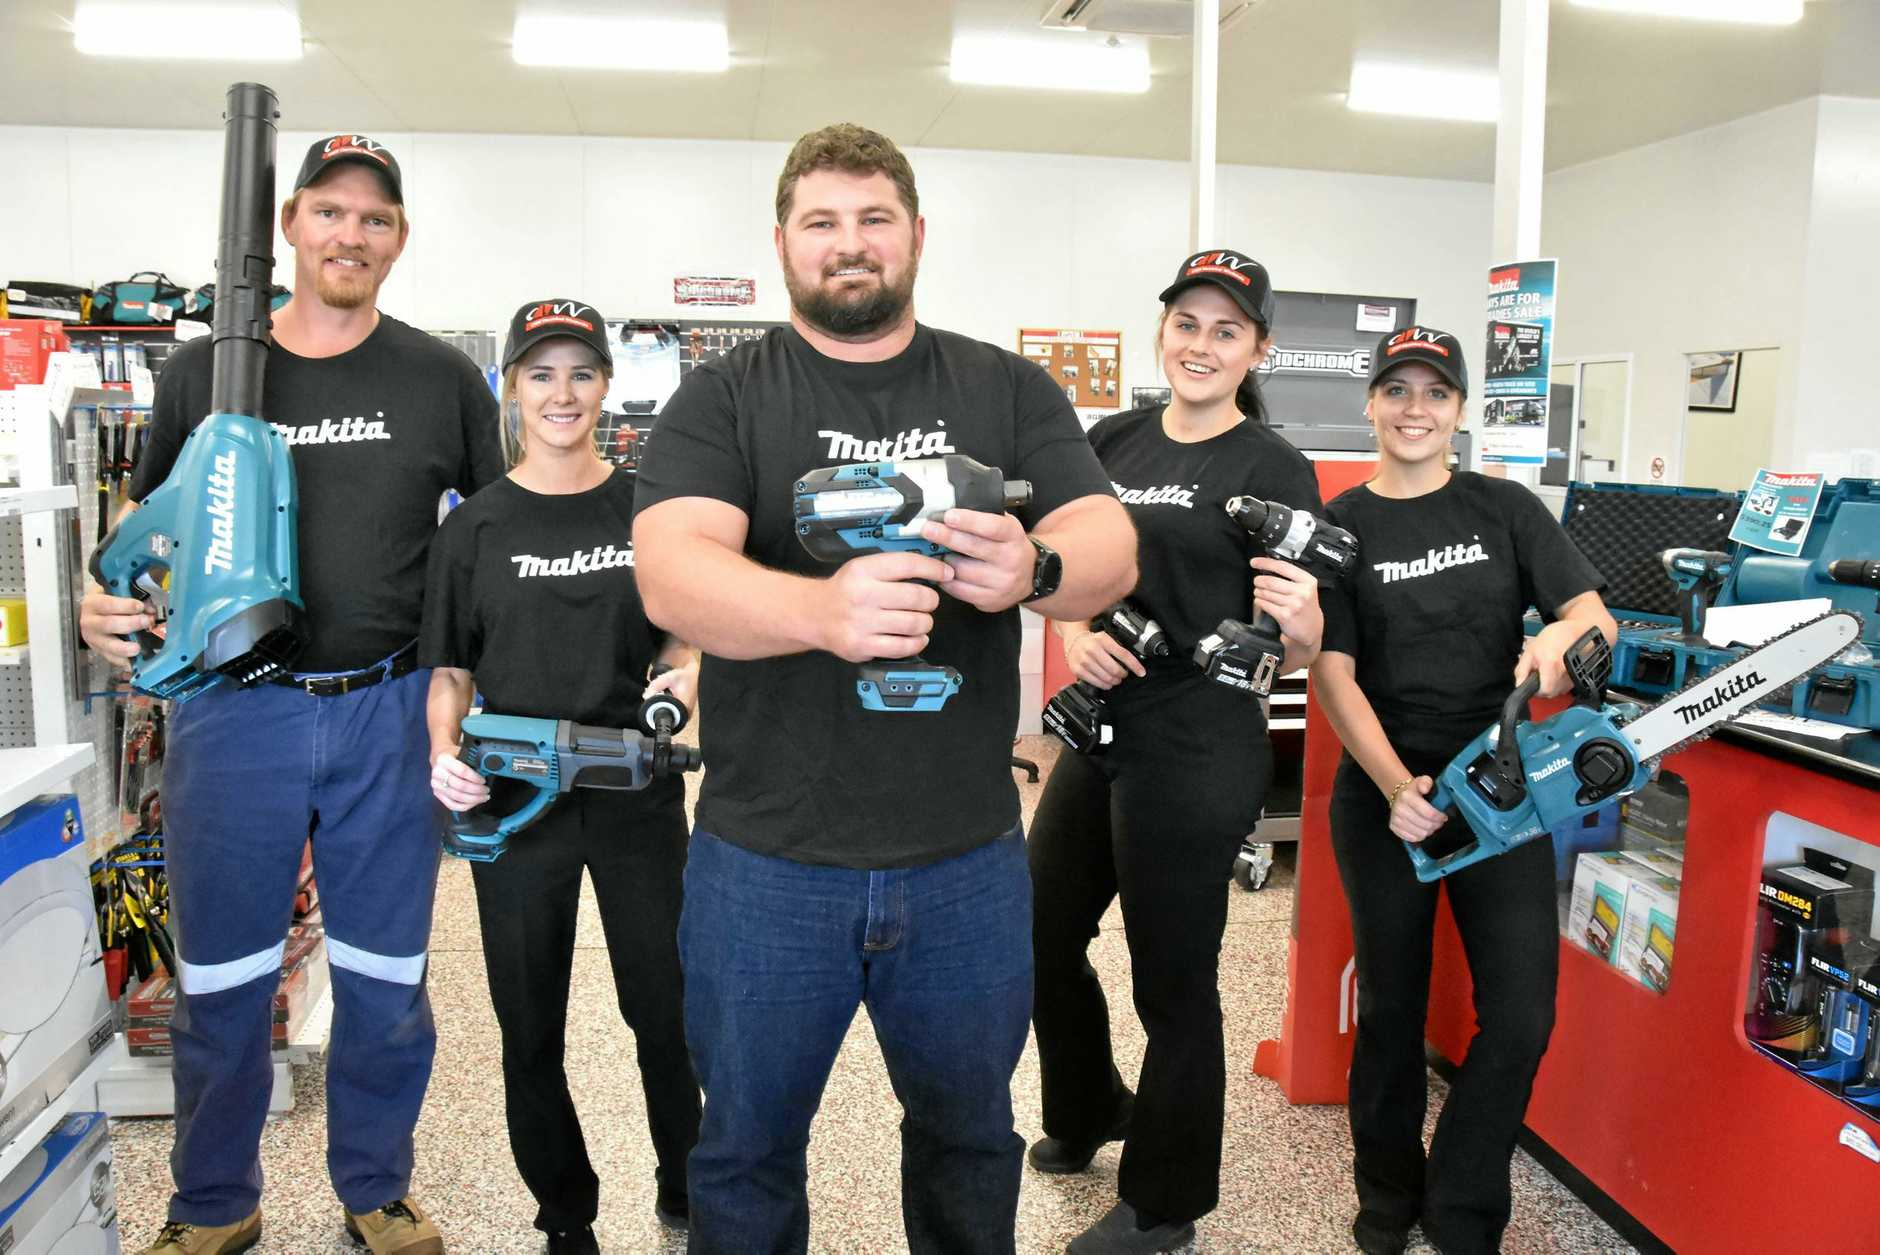 CNW's storeman Michael Hall, Stacey Fothergill, manager Adam McFadzen, Shayna Roberts and Letitia Delioglanis are preparing for the arrival of Makita's Tool Truck on Friday.